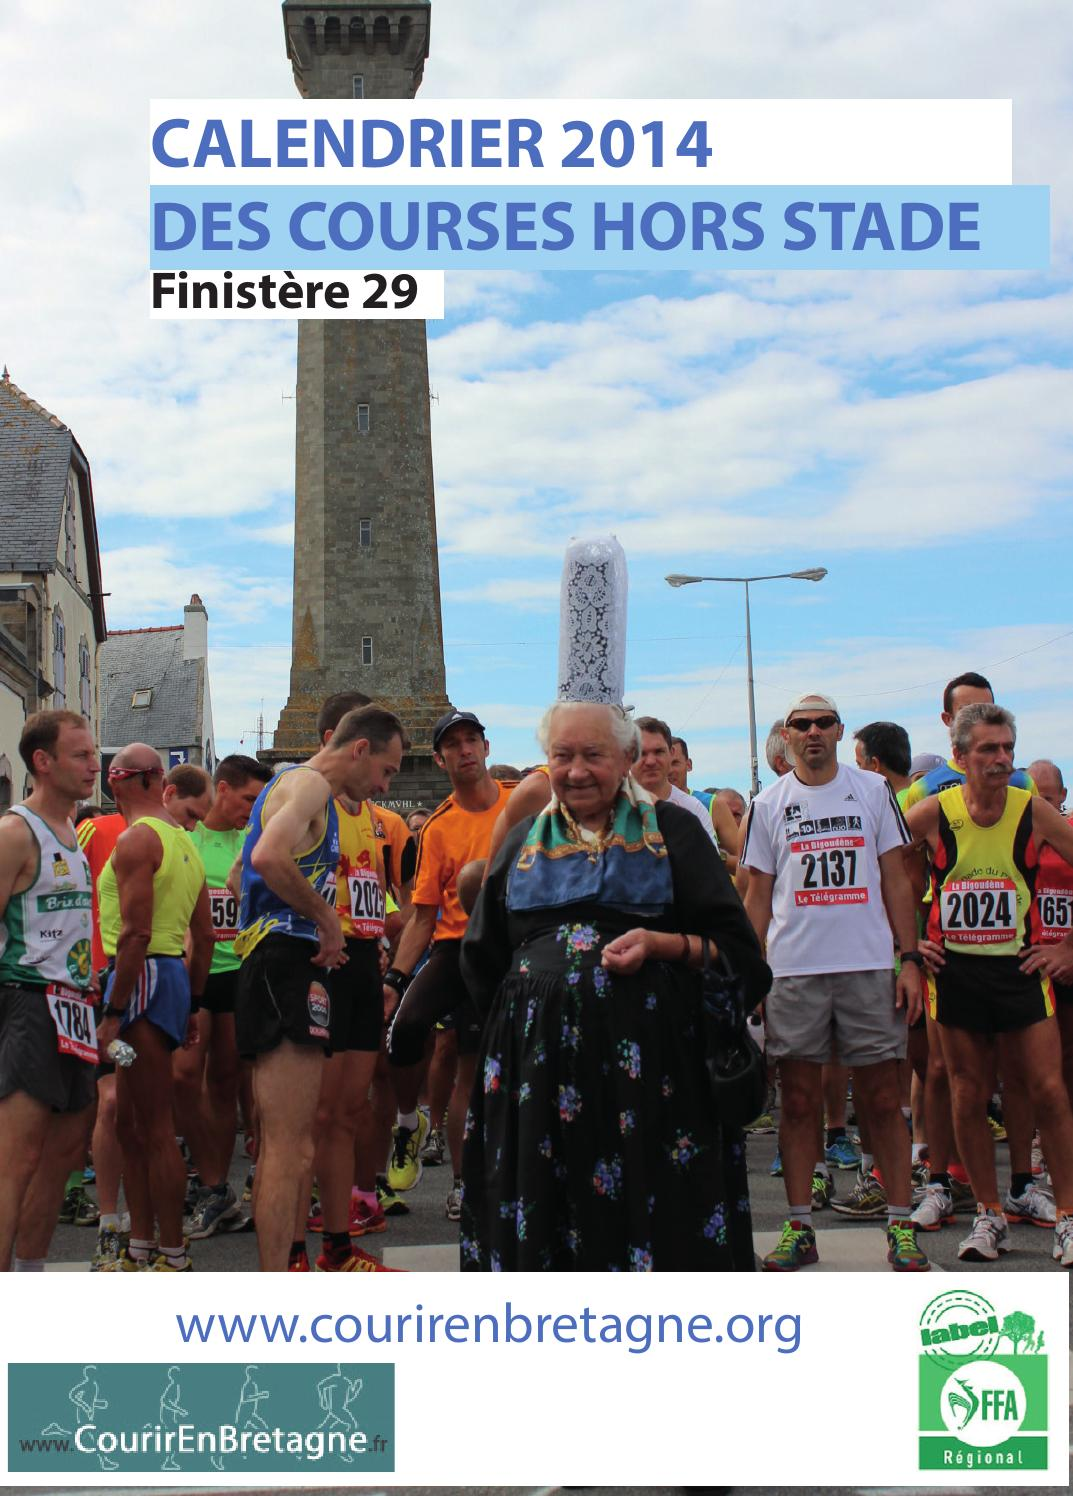 Calendrier Trail Finistere.Cdchs 2014 Calendrier Running Du Finistere By Yanoo Run